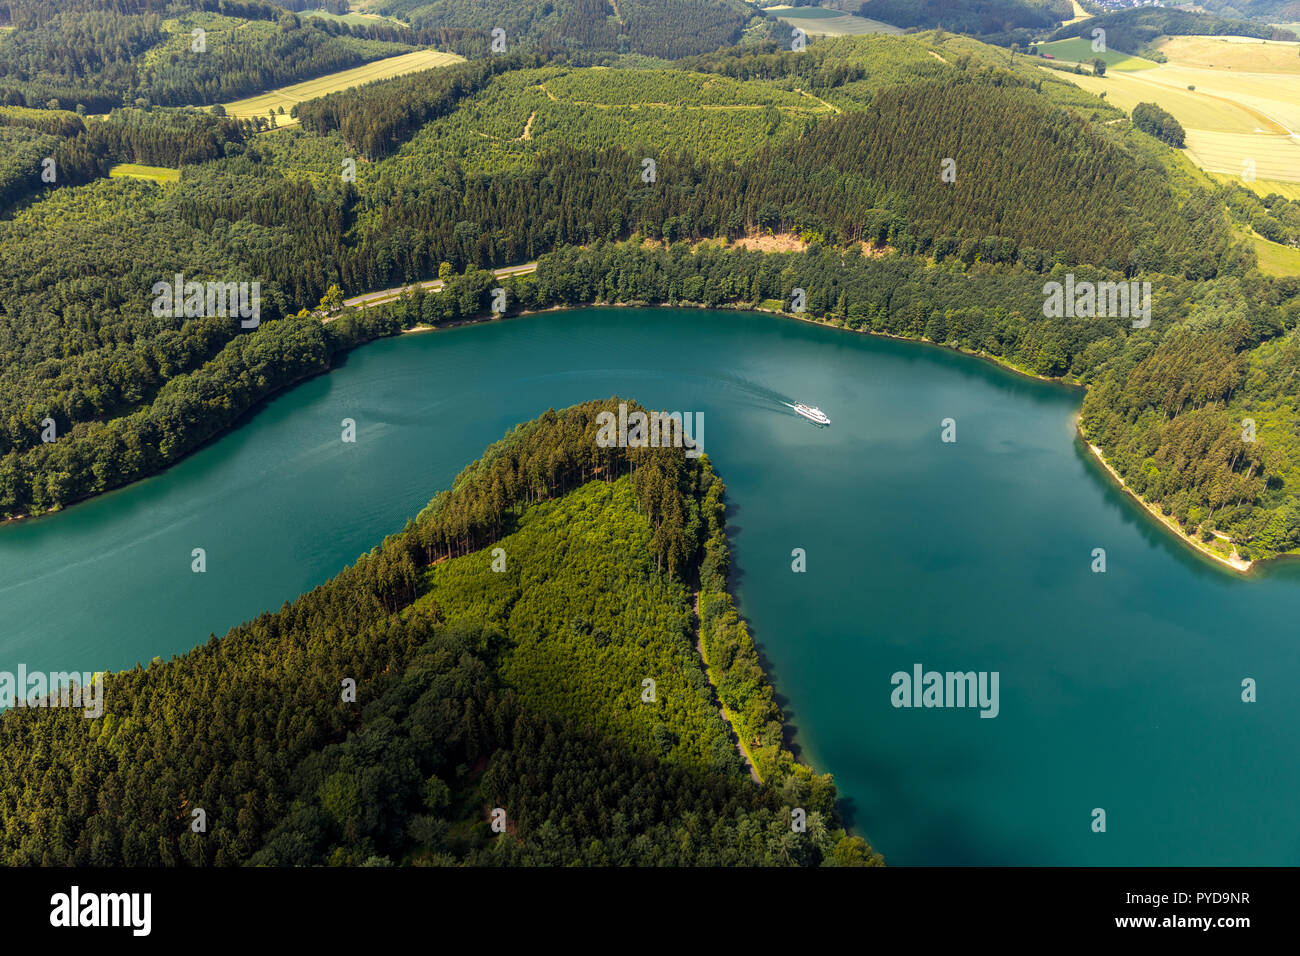 Aerial view, southern Hennesee, MS Hennesee, Meschede, Sauerland, lake, reservoir, North Rhine-Westphalia, Germany, Meschede, DEU, Europe, birds-eyes  Stock Photo